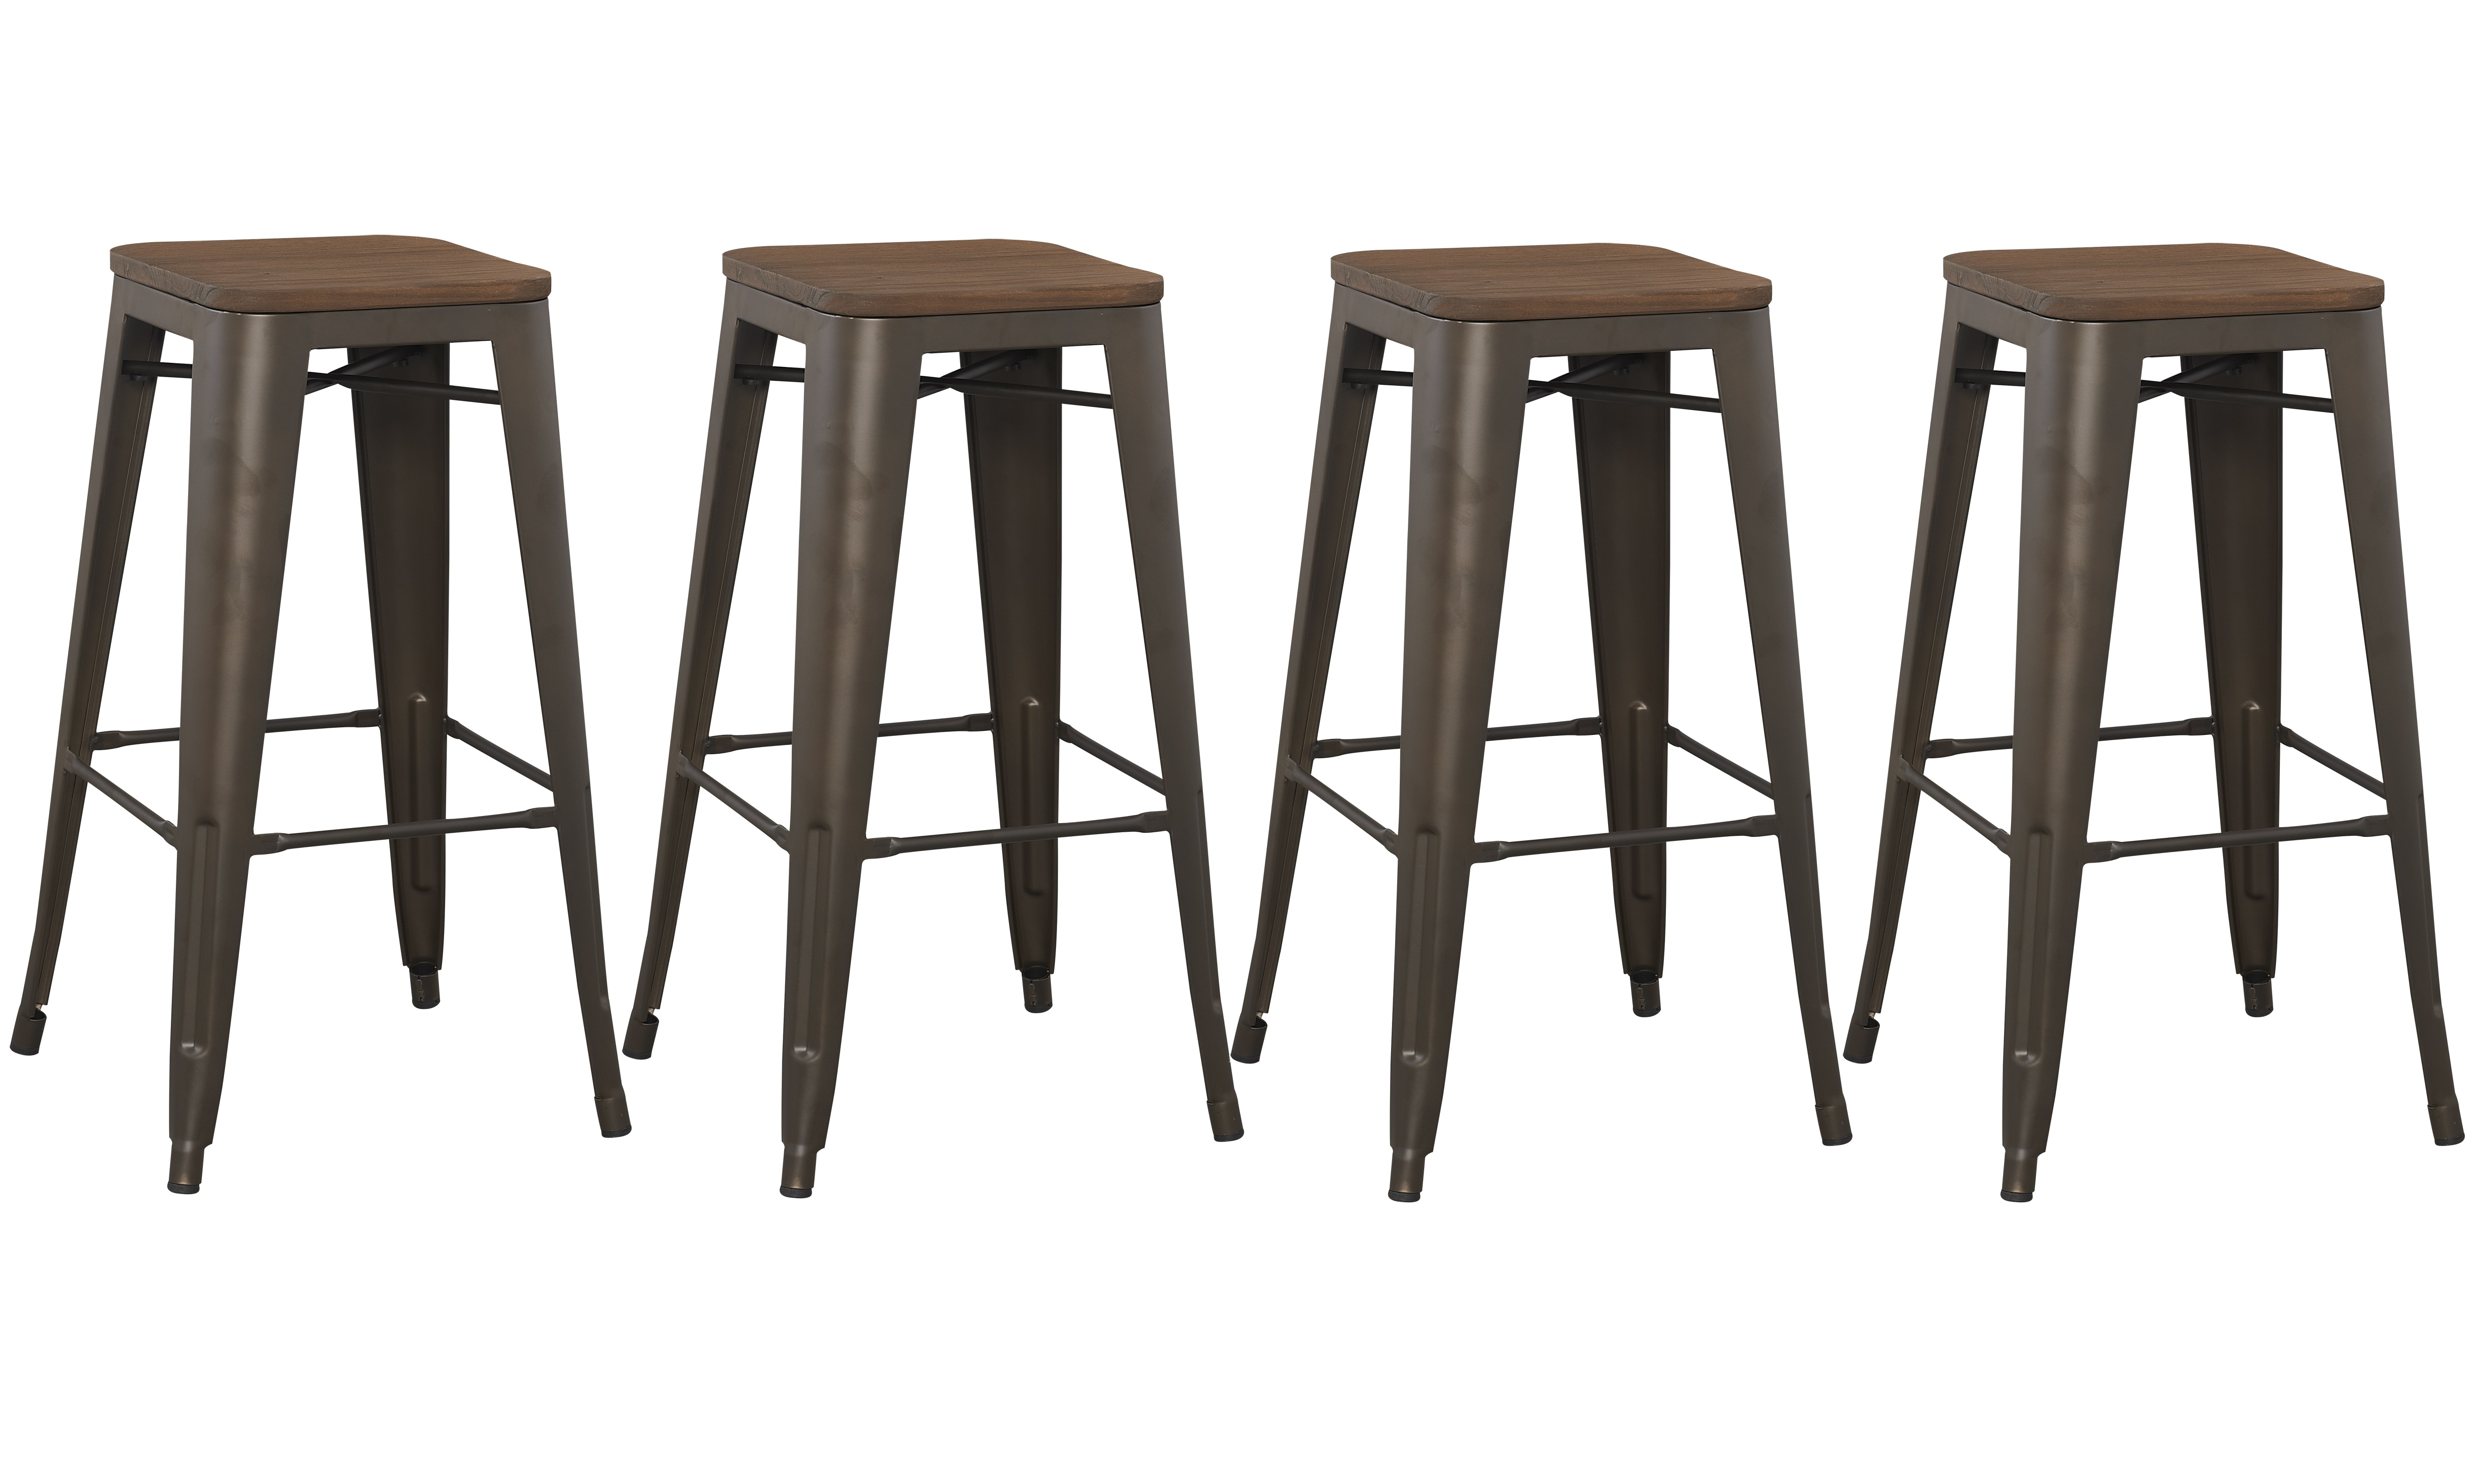 4 Pack 30 Inch Industrial Antique Vintage Rustic Metal Bar Stool With